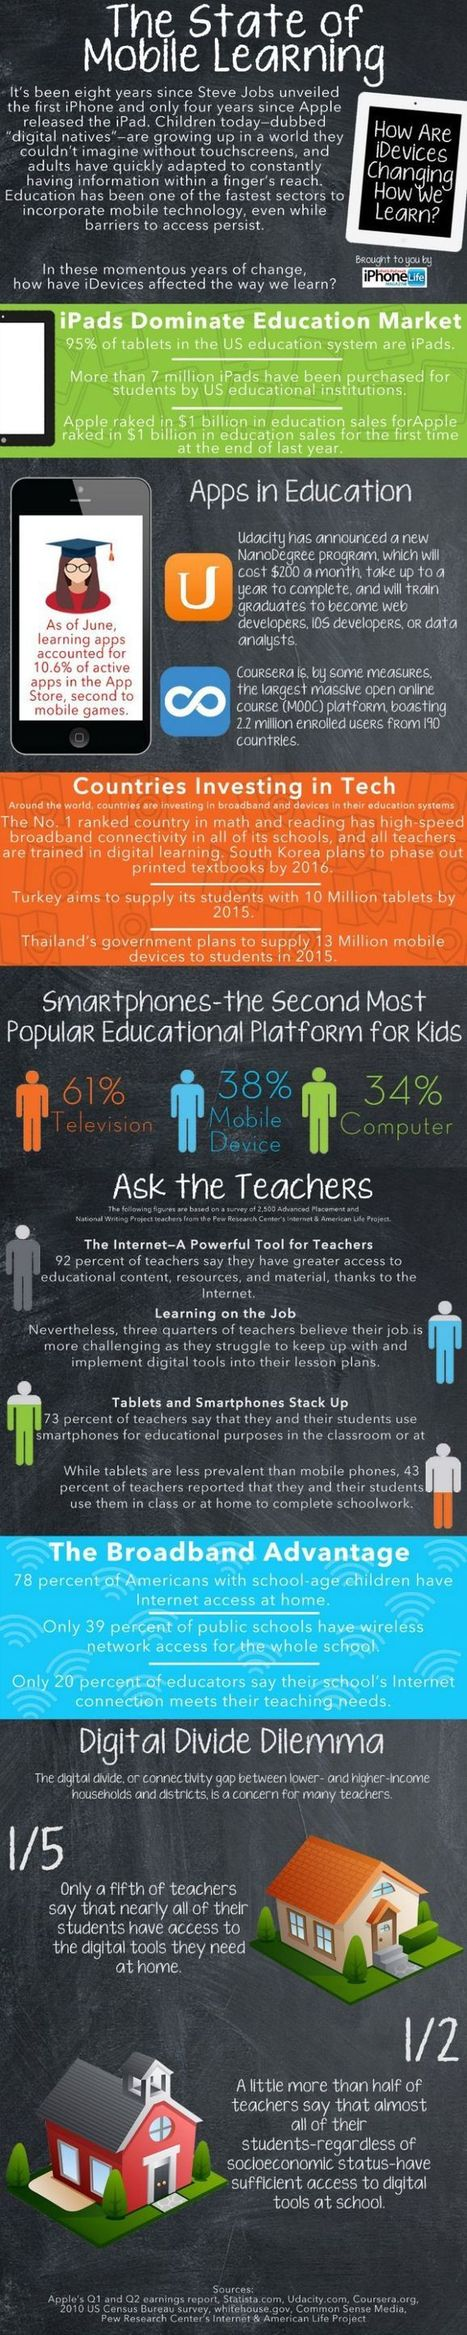 The State of Mobile Learning Infographic - e-Learning Infographics   Contemporary Learning Design   Scoop.it